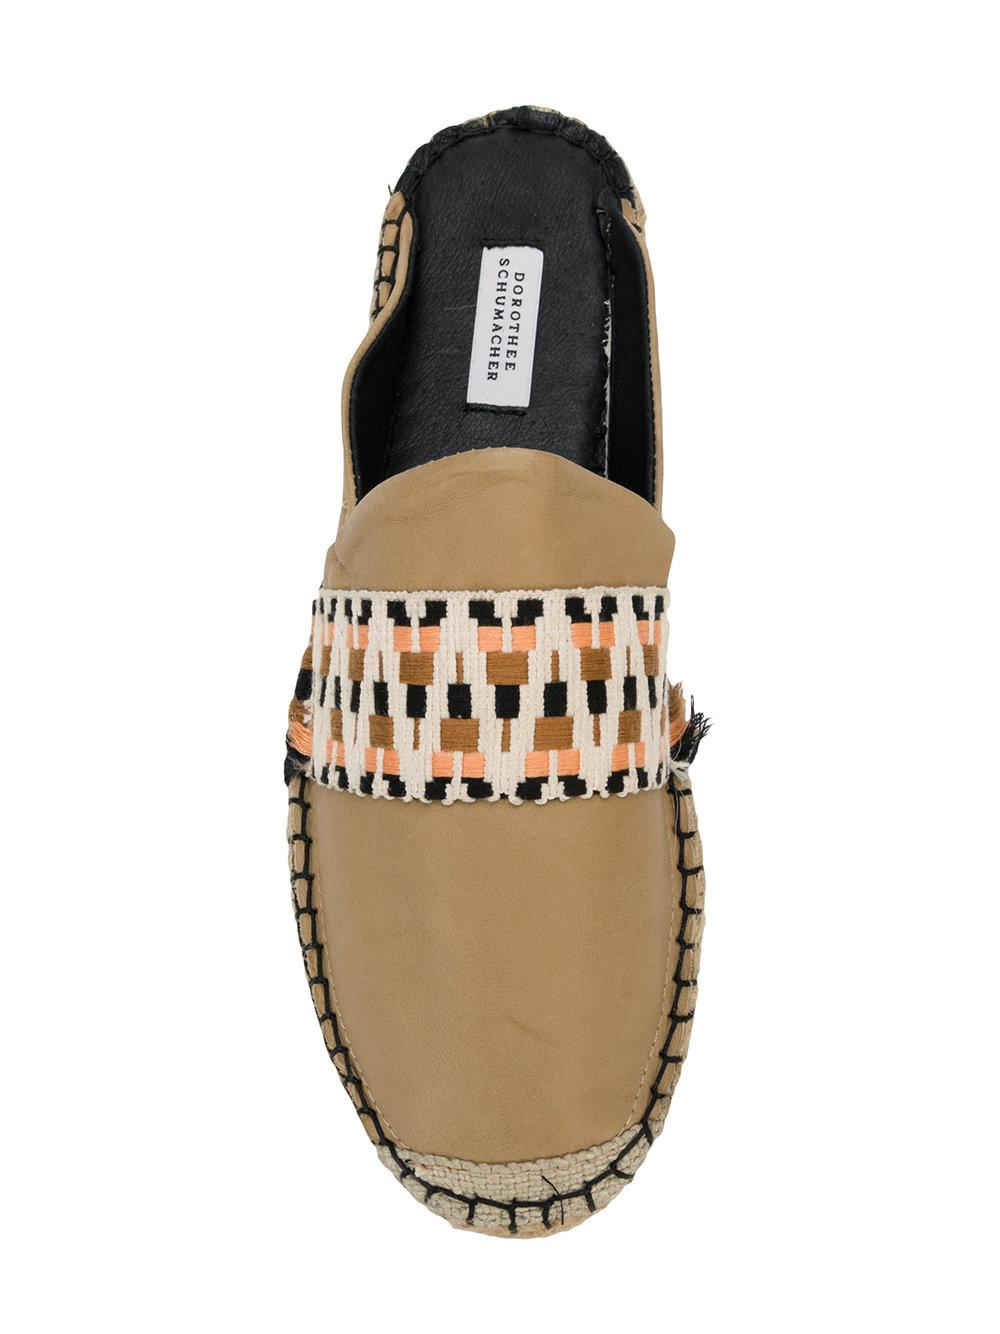 Discount Enjoy slip-on espadrilles - Nude & Neutrals Dorothee Schumacher Discount Pick A Best Clearance Perfect Sale Sale Online EwLj6O6D